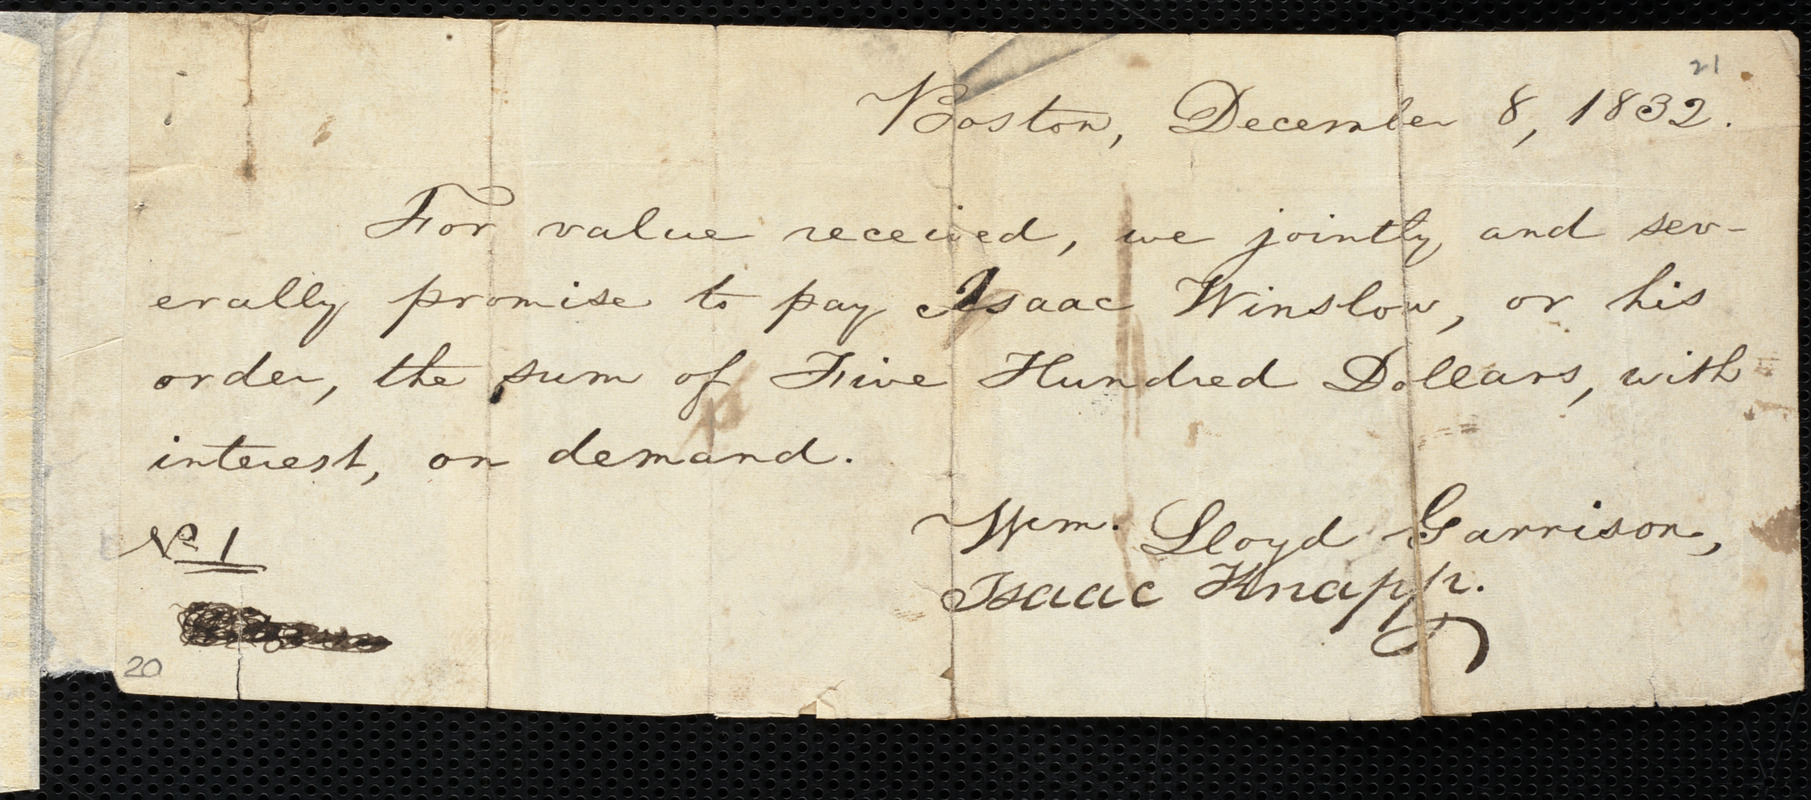 Promissory note from William Lloyd Garrison, Boston, [Mass.], to Isaac Winslow, December 8, 1832